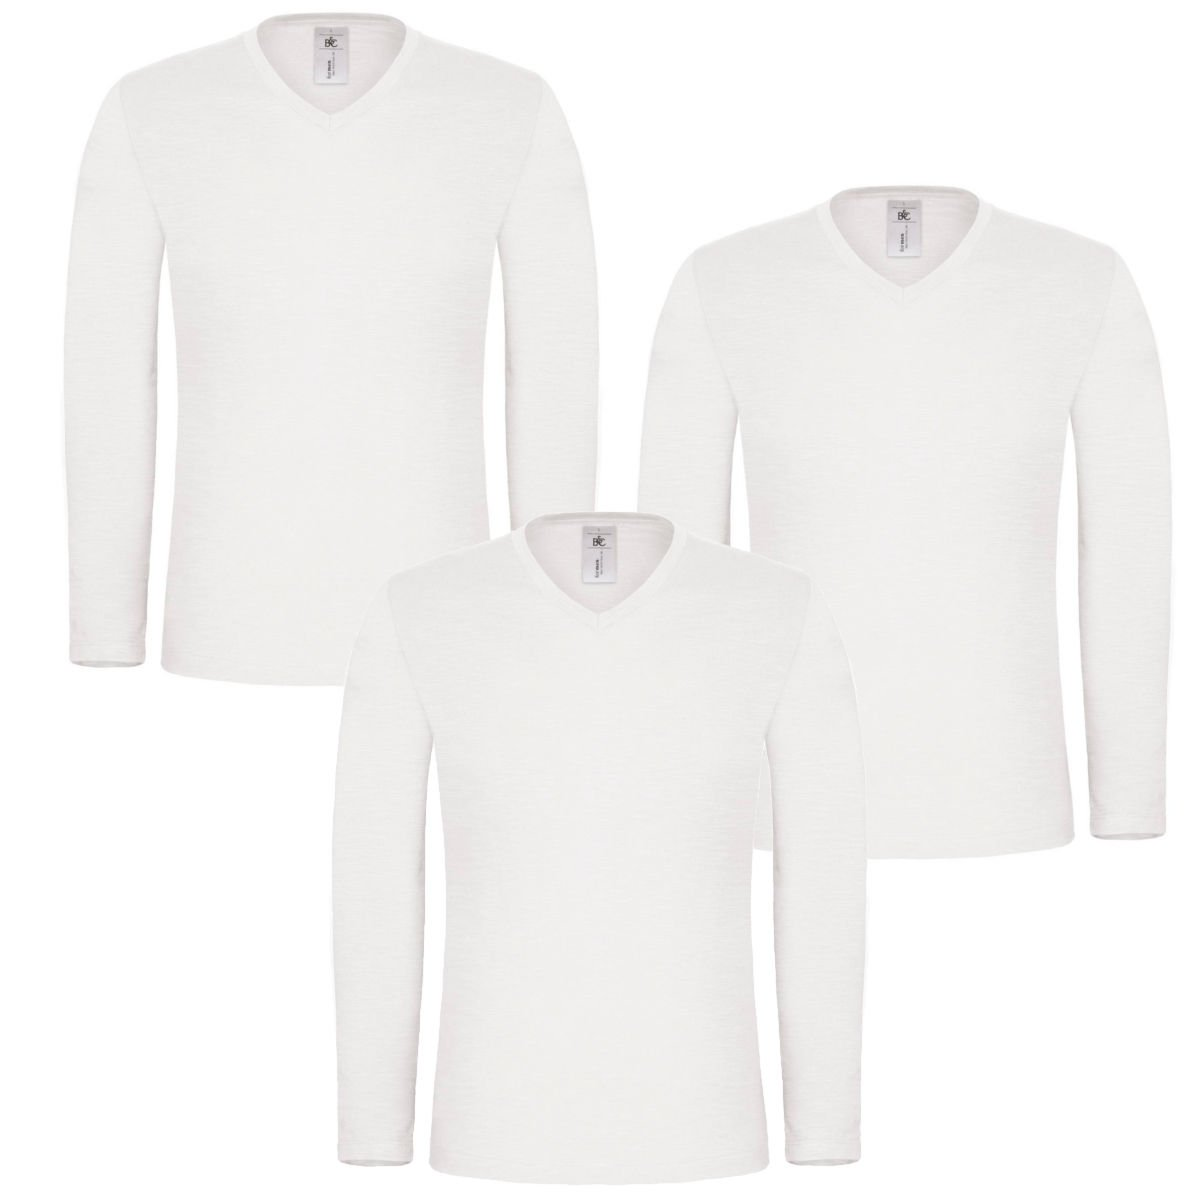 Style It Up Mens Long Sleeve T-Shirt 100% Cotton Base Layer V Neck Slim Fit Muscle Top Plain